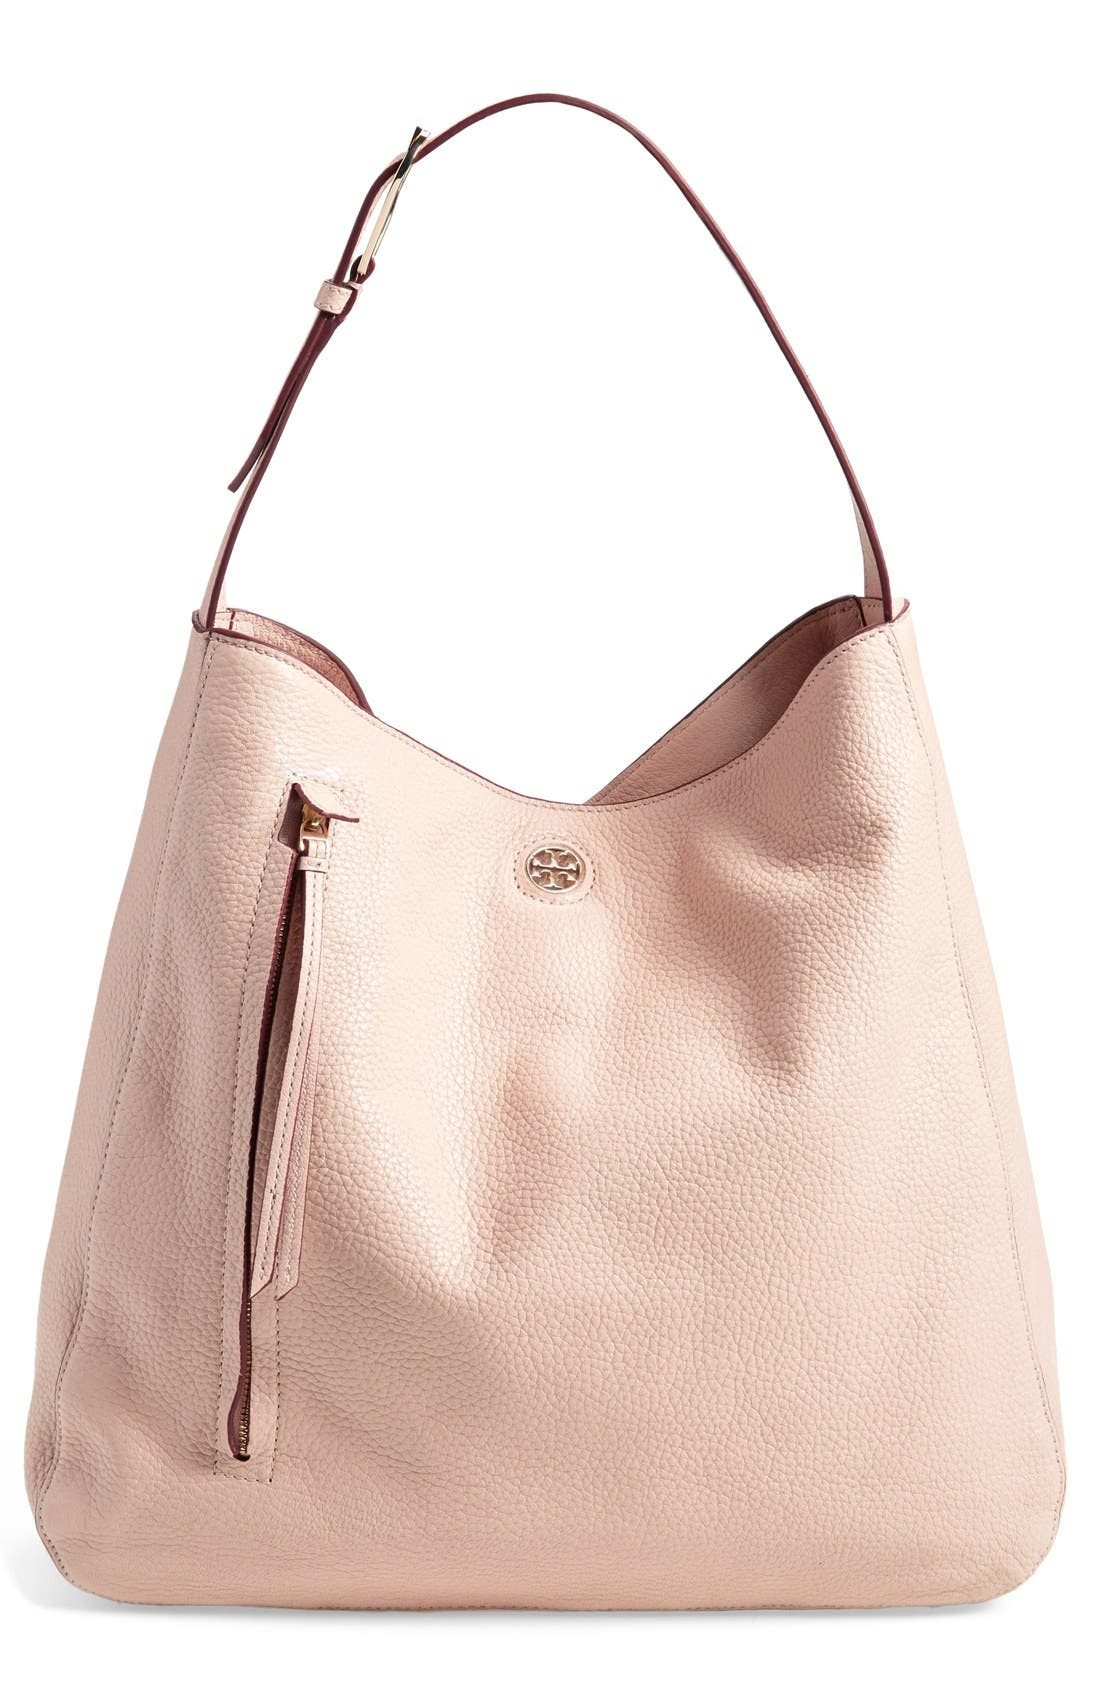 Main Image - Tory Burch 'Brody' Leather Hobo Bag